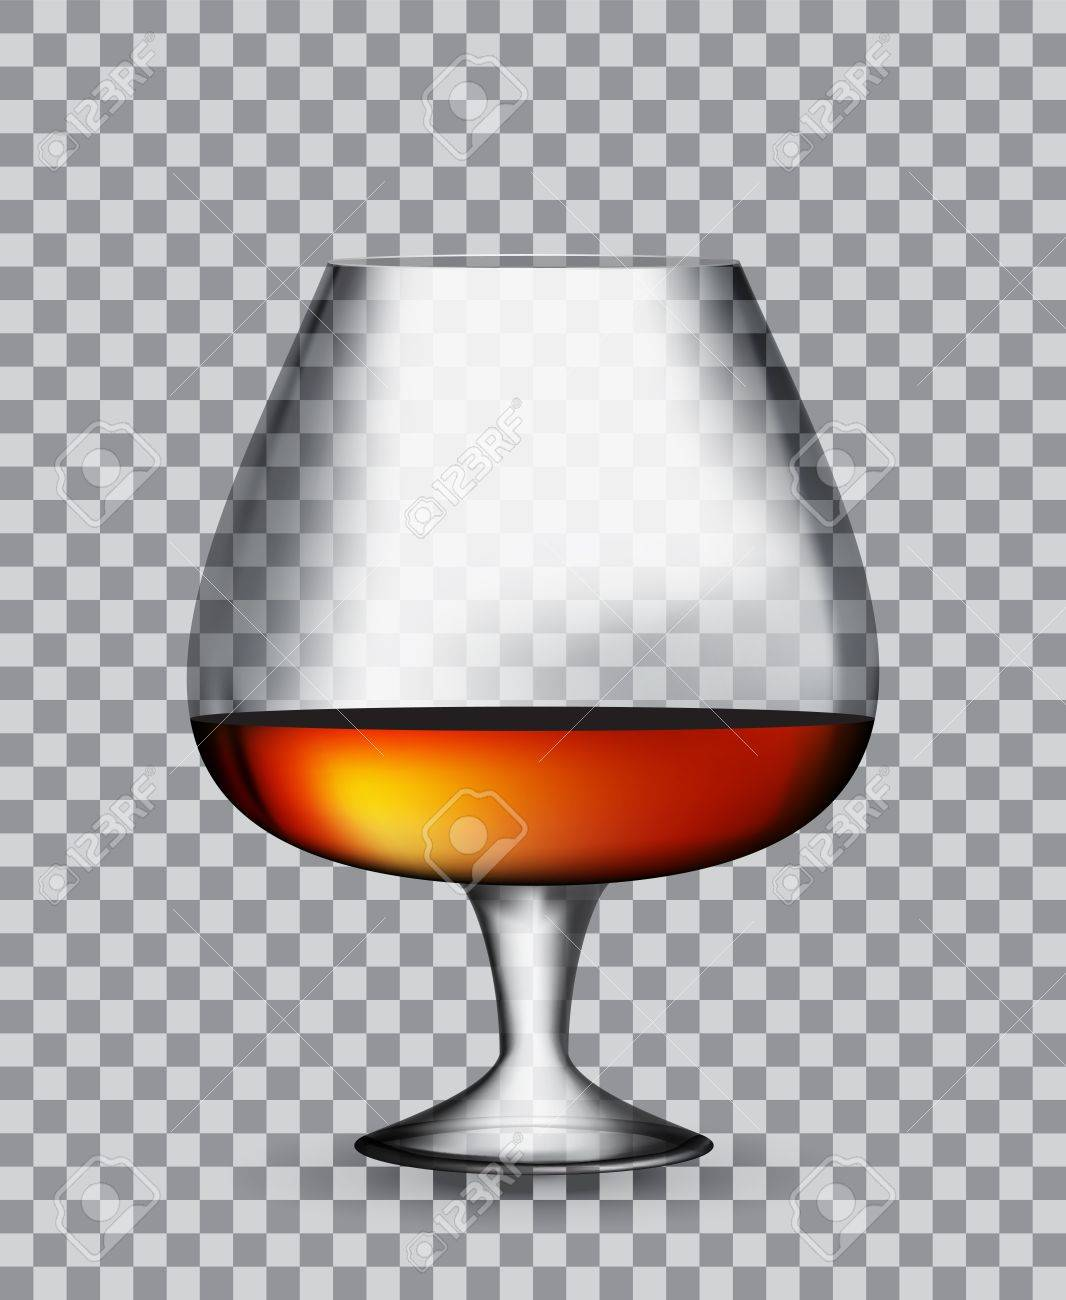 Background image 50 transparent - Glass Collector 50 Year Old French Cognac On Transparent Background Vector Illustration Eps10